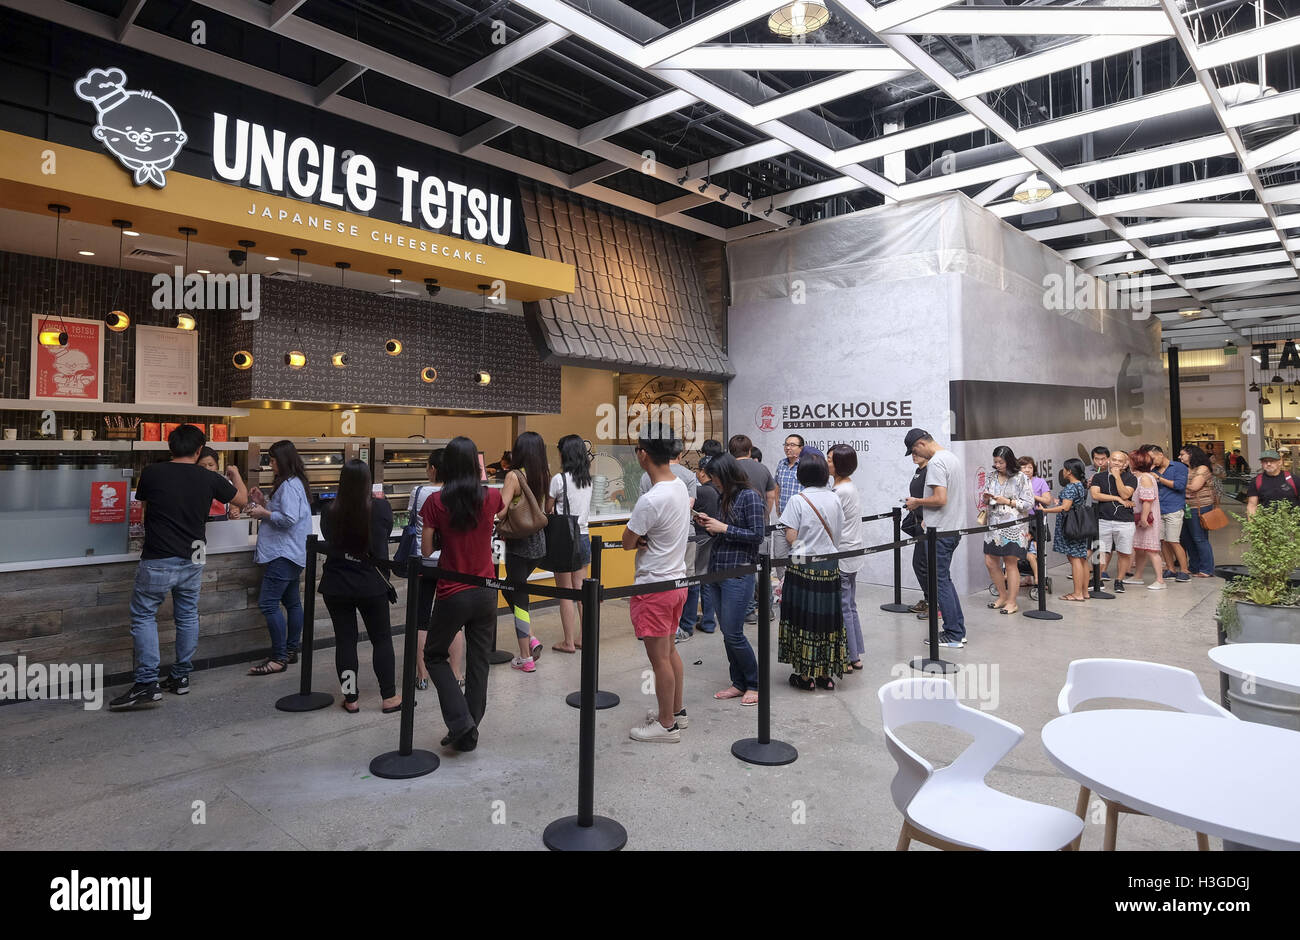 Los Angeles California Usa 26th Sep 2016 Uncle Tetsu The Stock Photo 122678434 Alamy